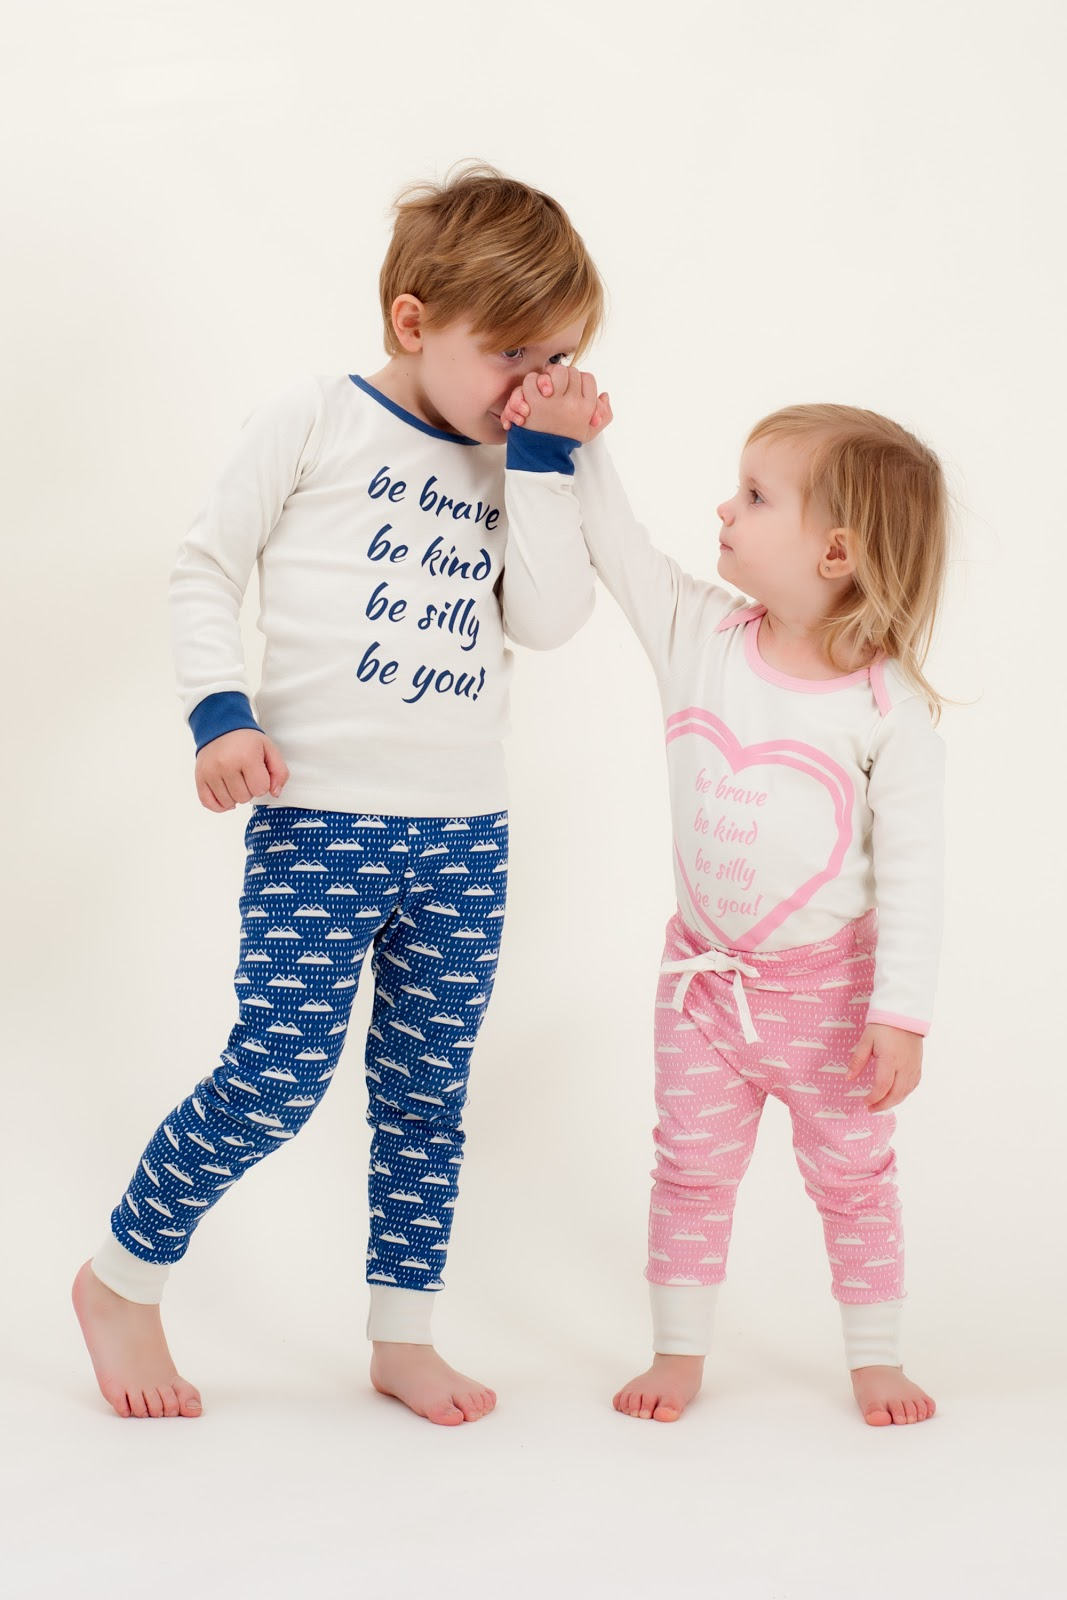 NIOVI ORGANIC CLOTHING for kids